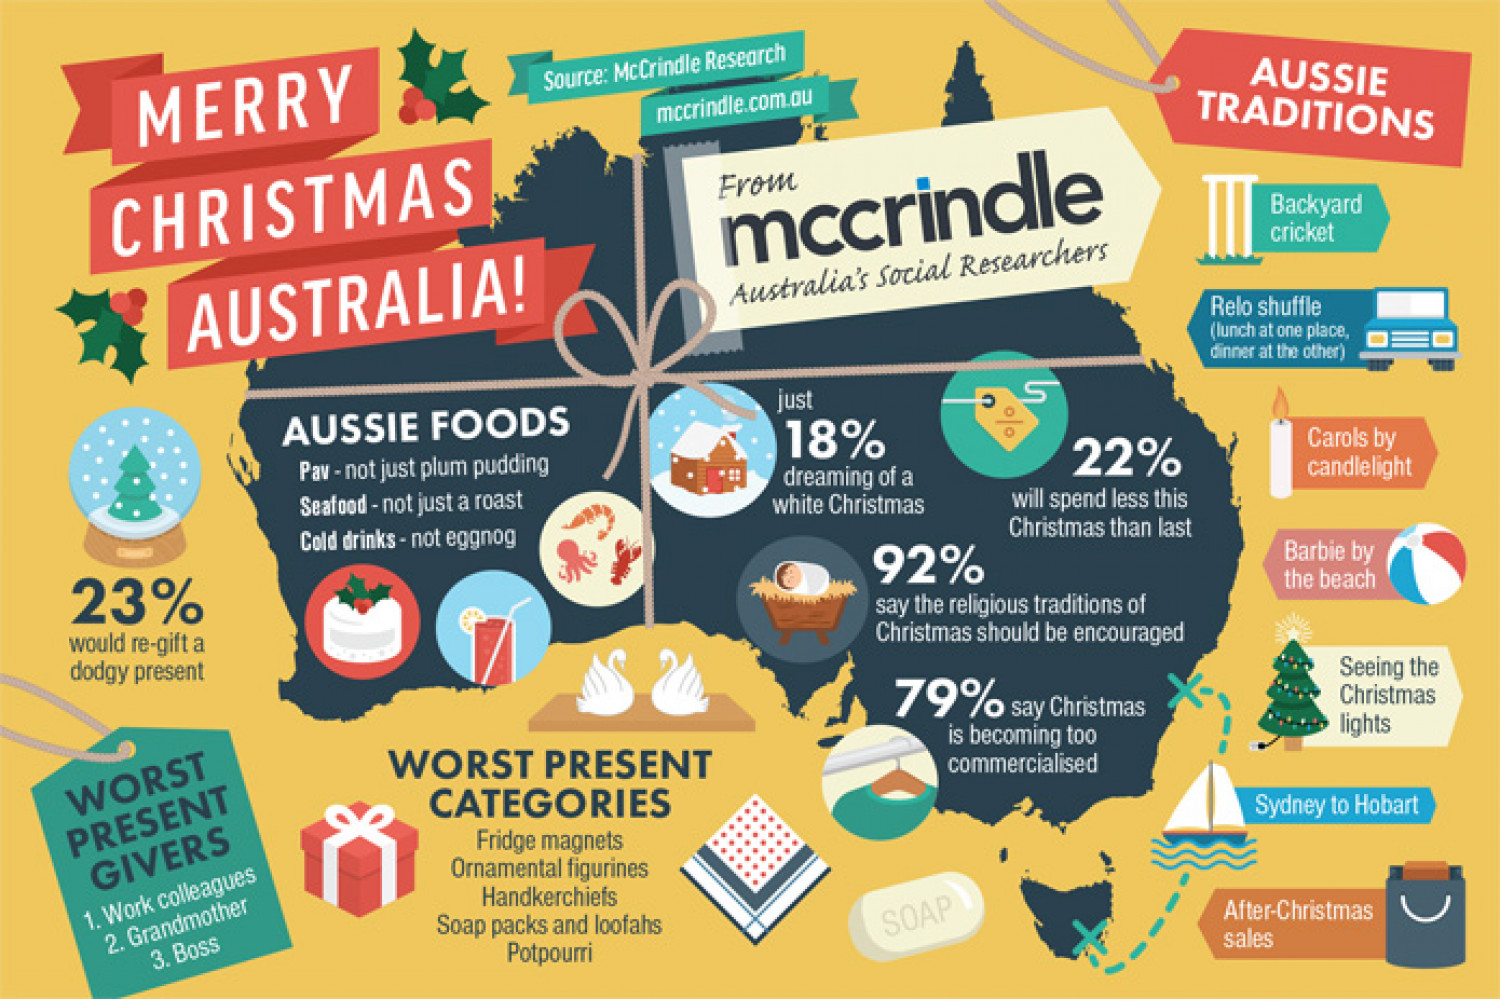 Fun facts about Christmas in Australia Infographic